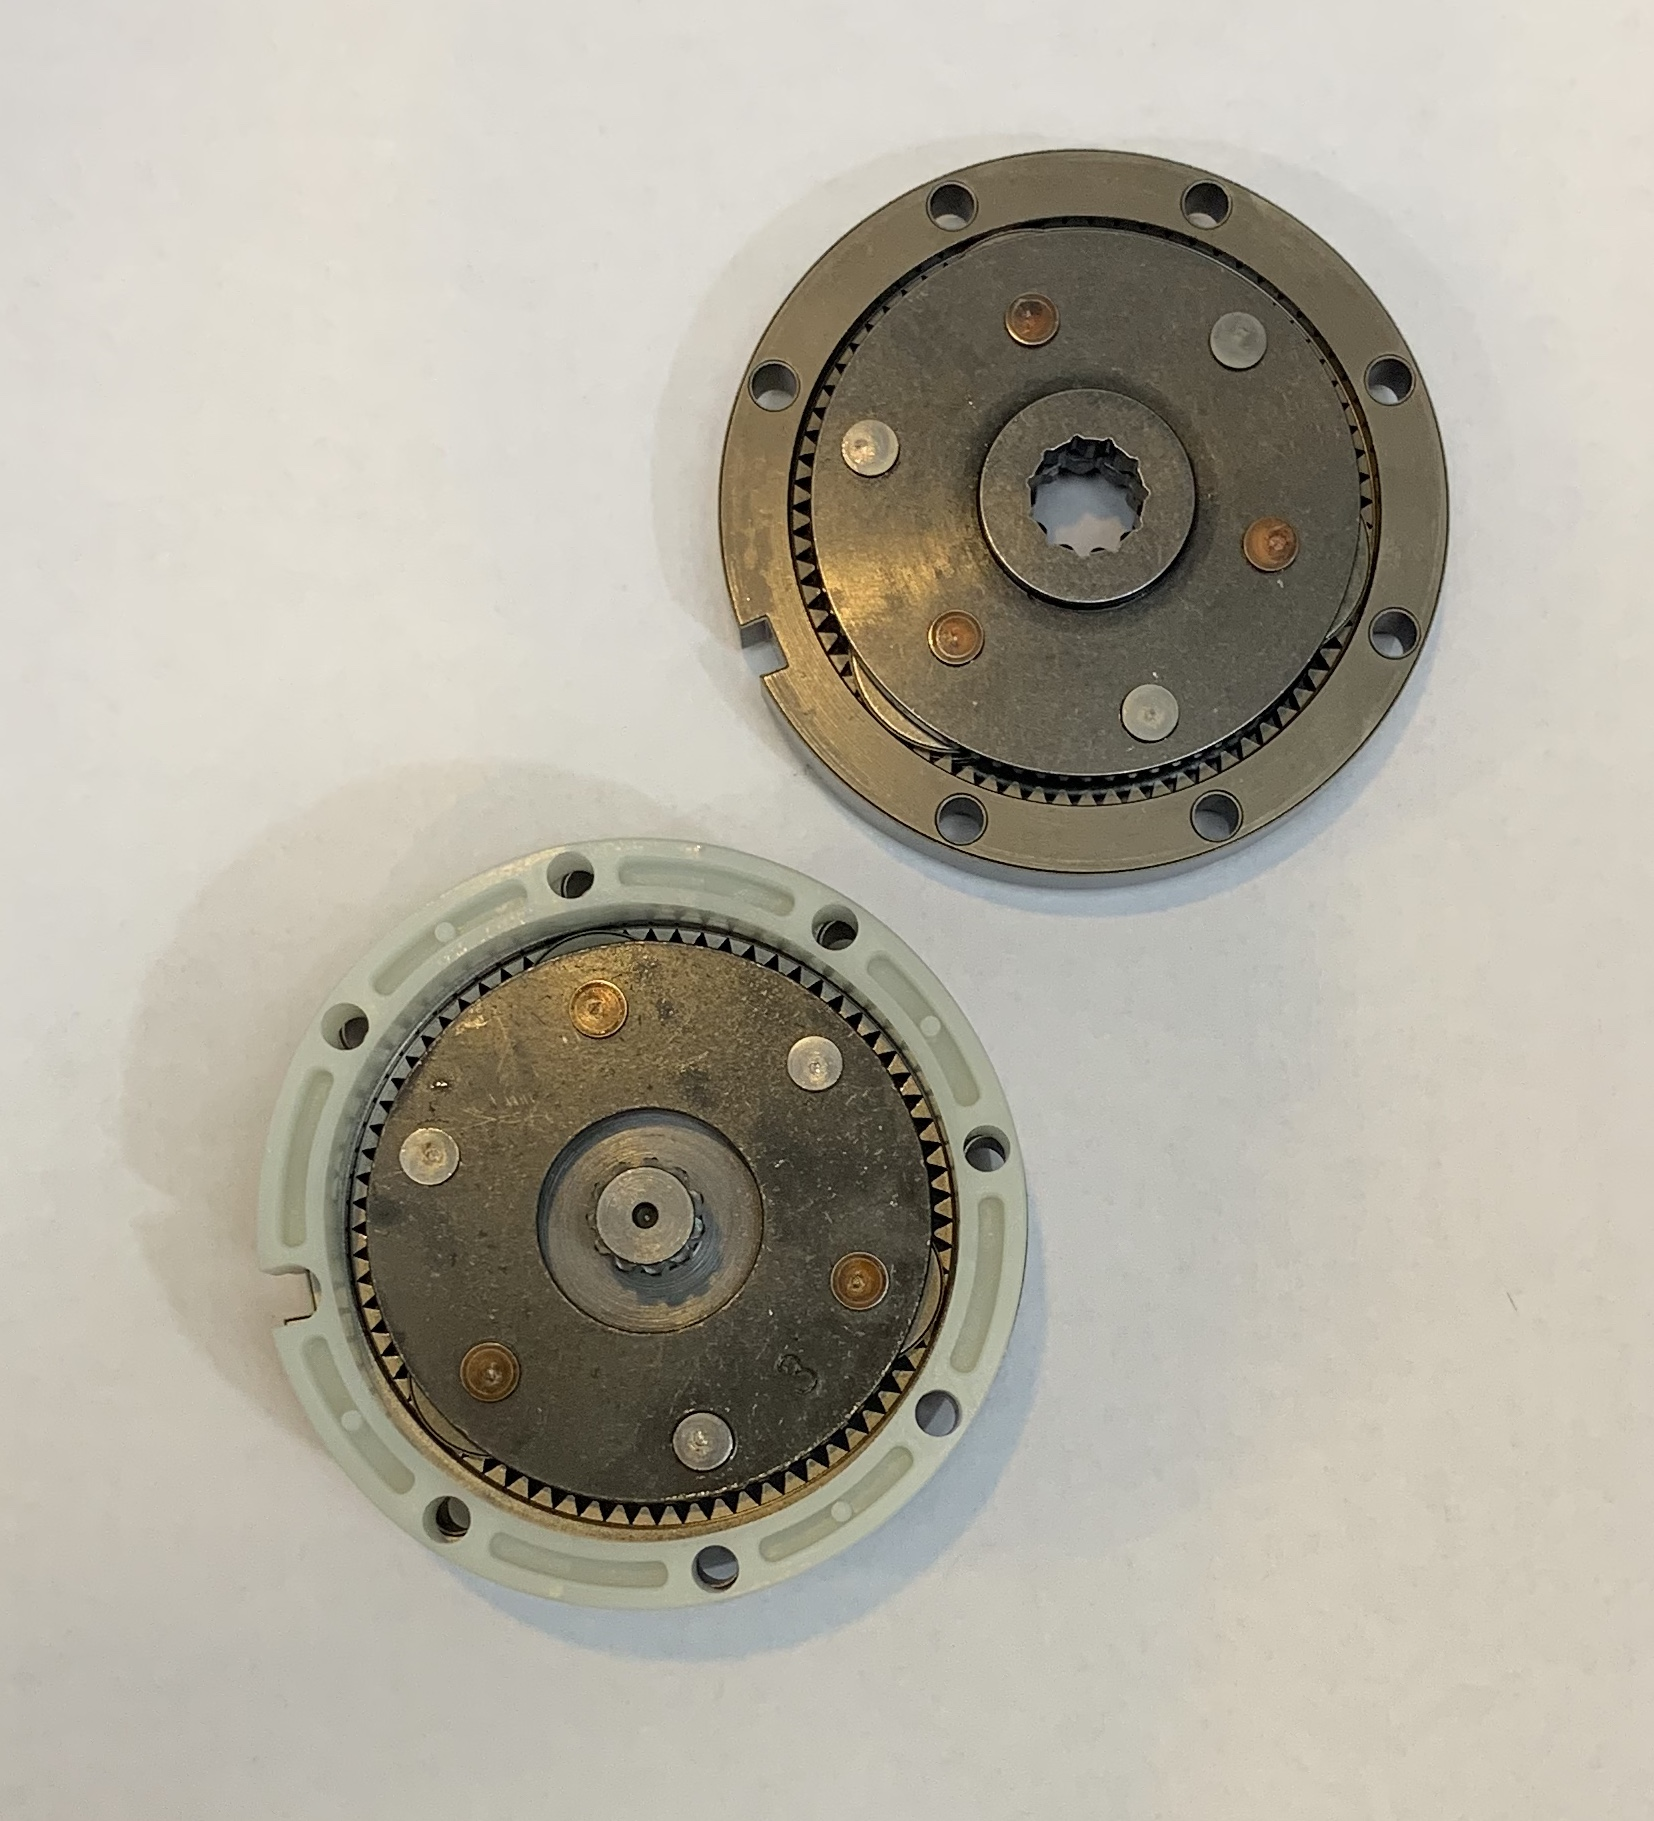 How to Re-Order Your Planetary Gear from Matex Gears